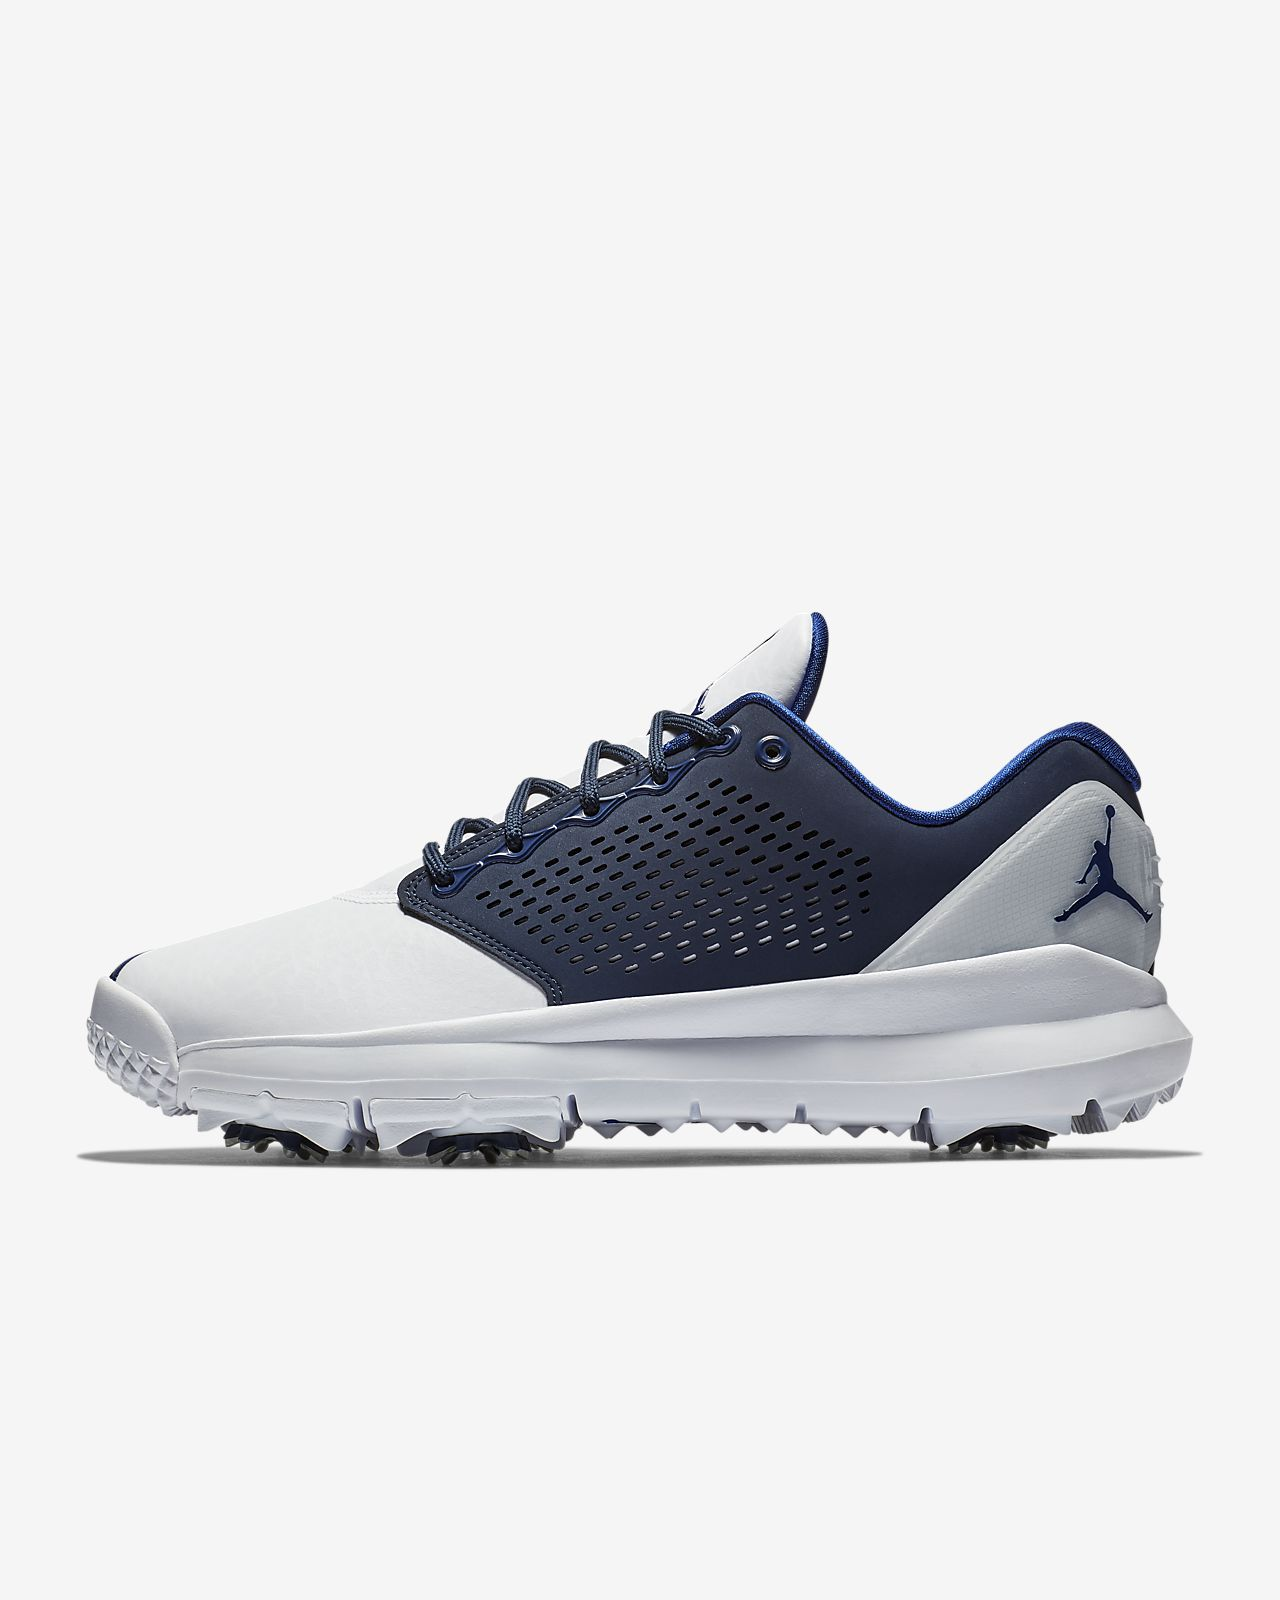 46eadd934dde The 7 coolest Nike Golf shoes you can purchase in UK ahead of 2019 ...